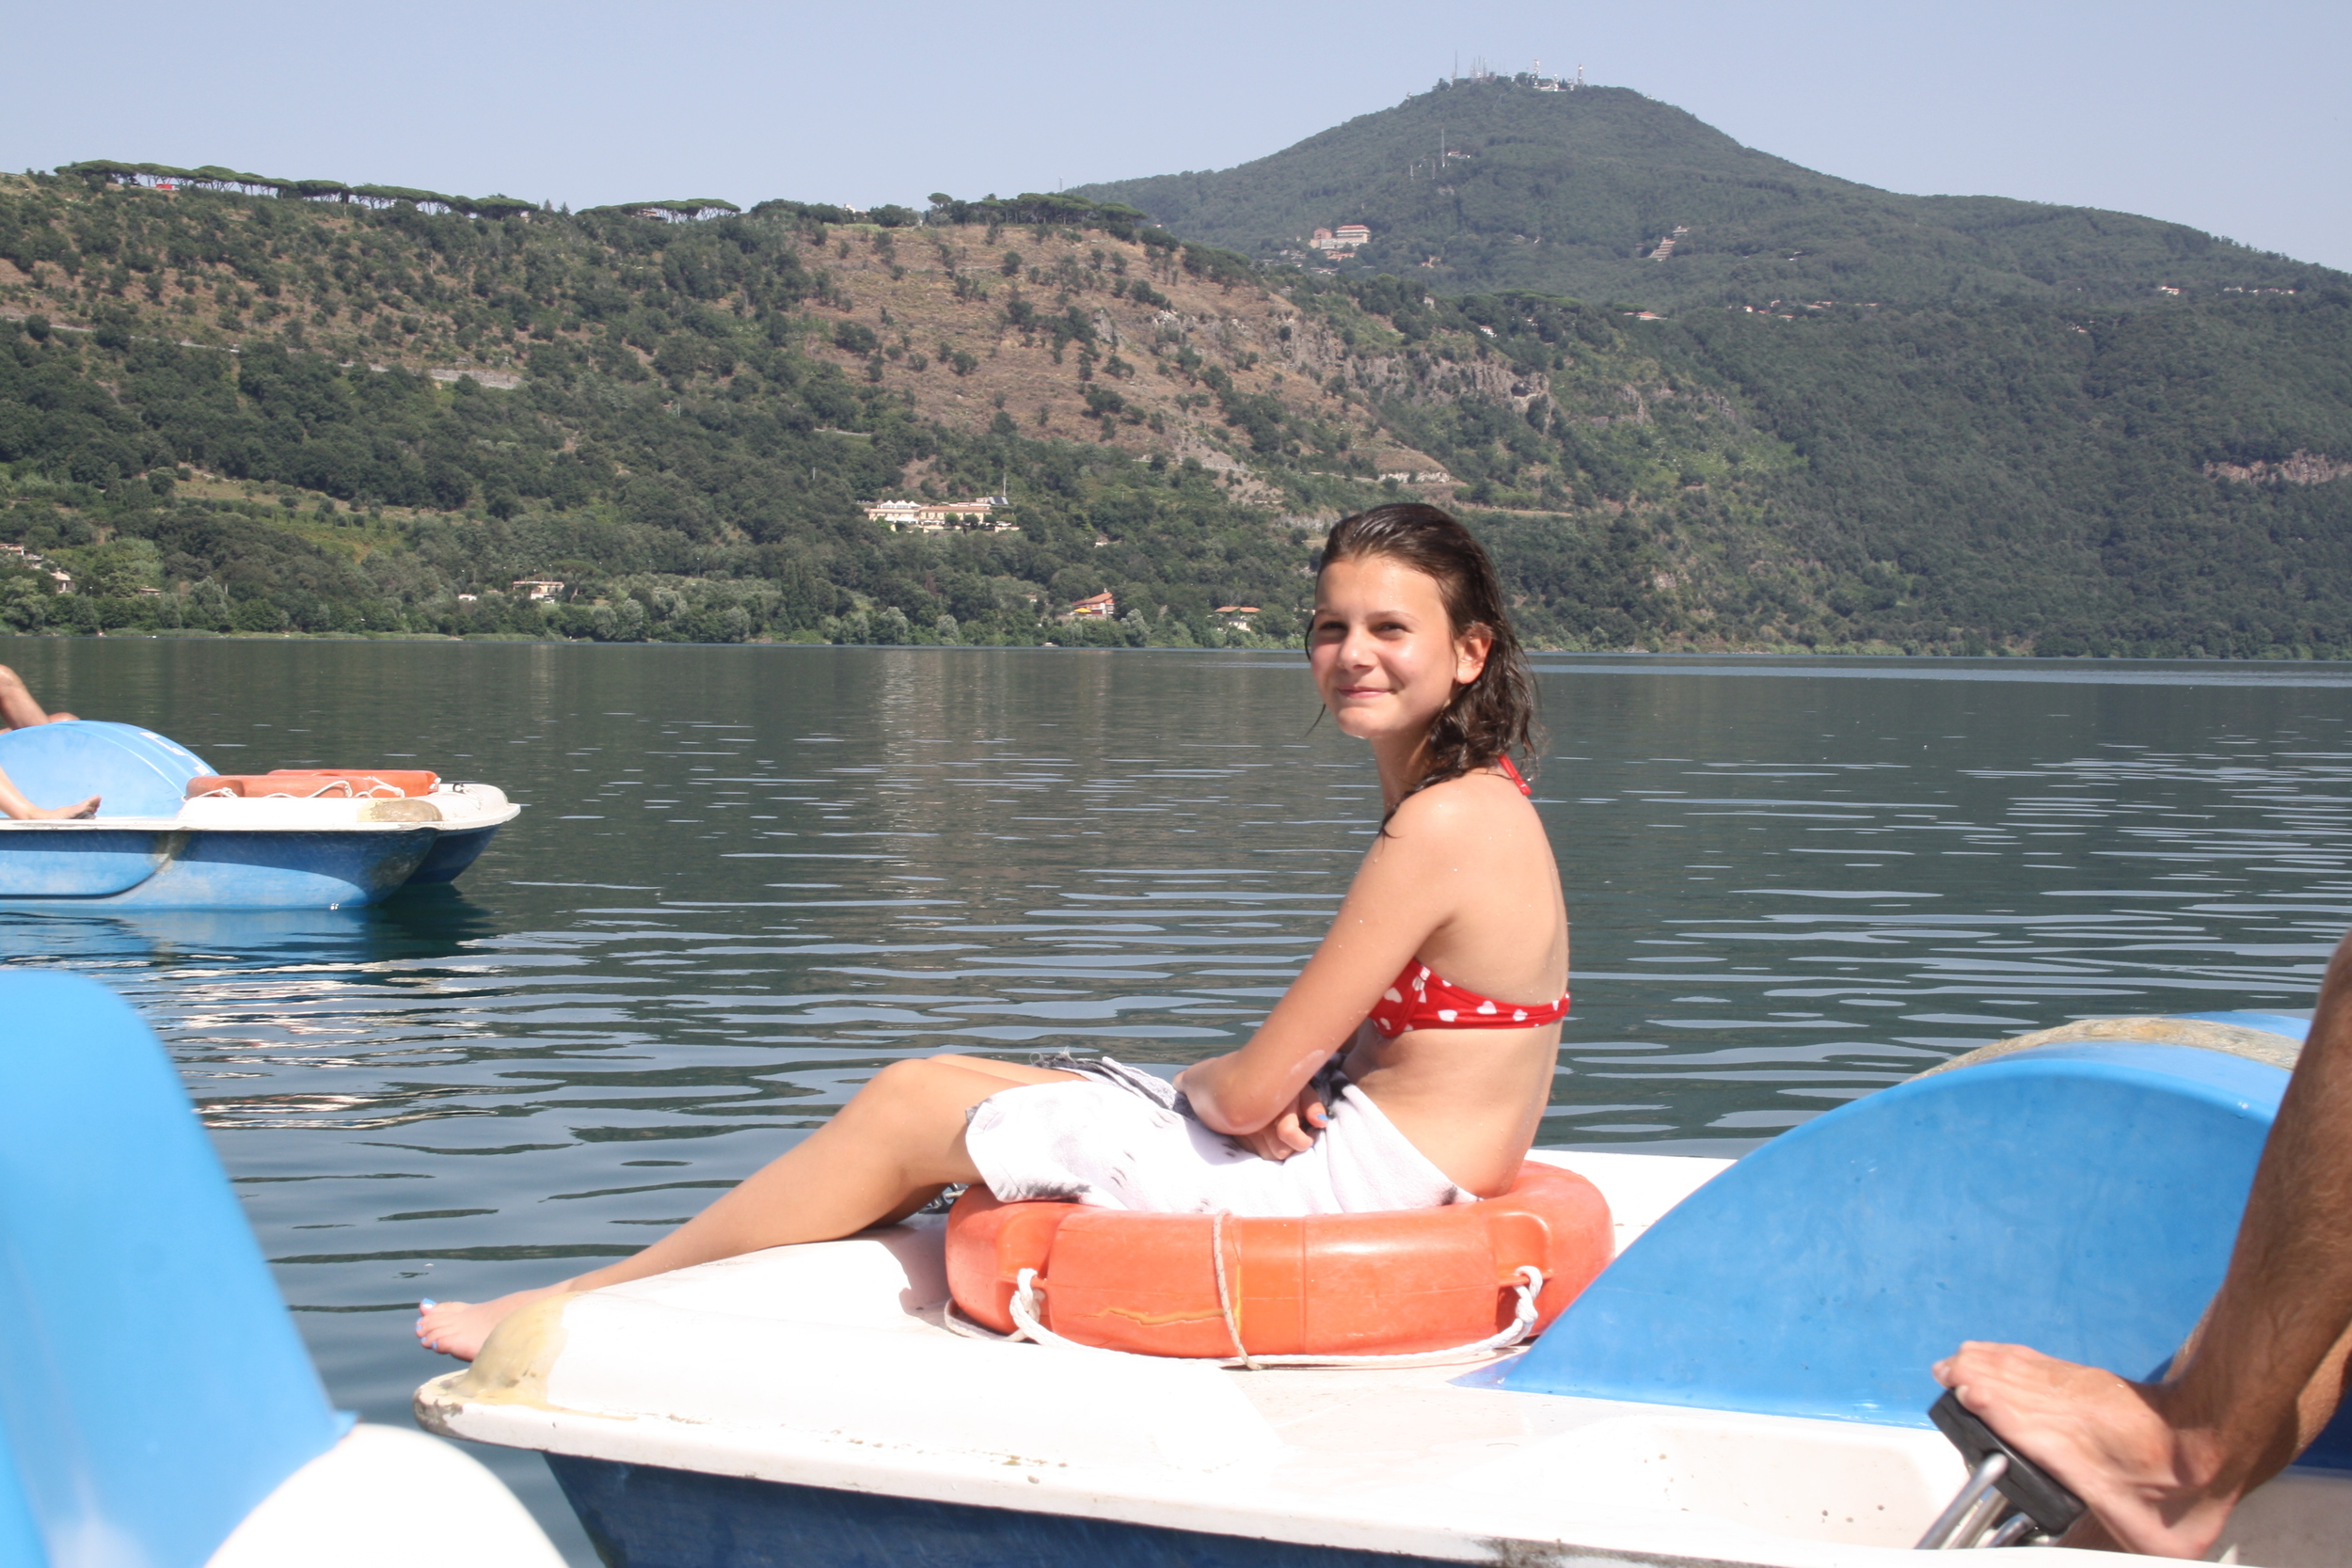 LAKE ALBANO   The neighbor lake is at Castel Gondolfo. The lake is even larger than the Nemi Lake and significantly more developed with beach facilities. You can rent canoes, kayaks, water bikes etc. There are many bars and restaurants in the area.